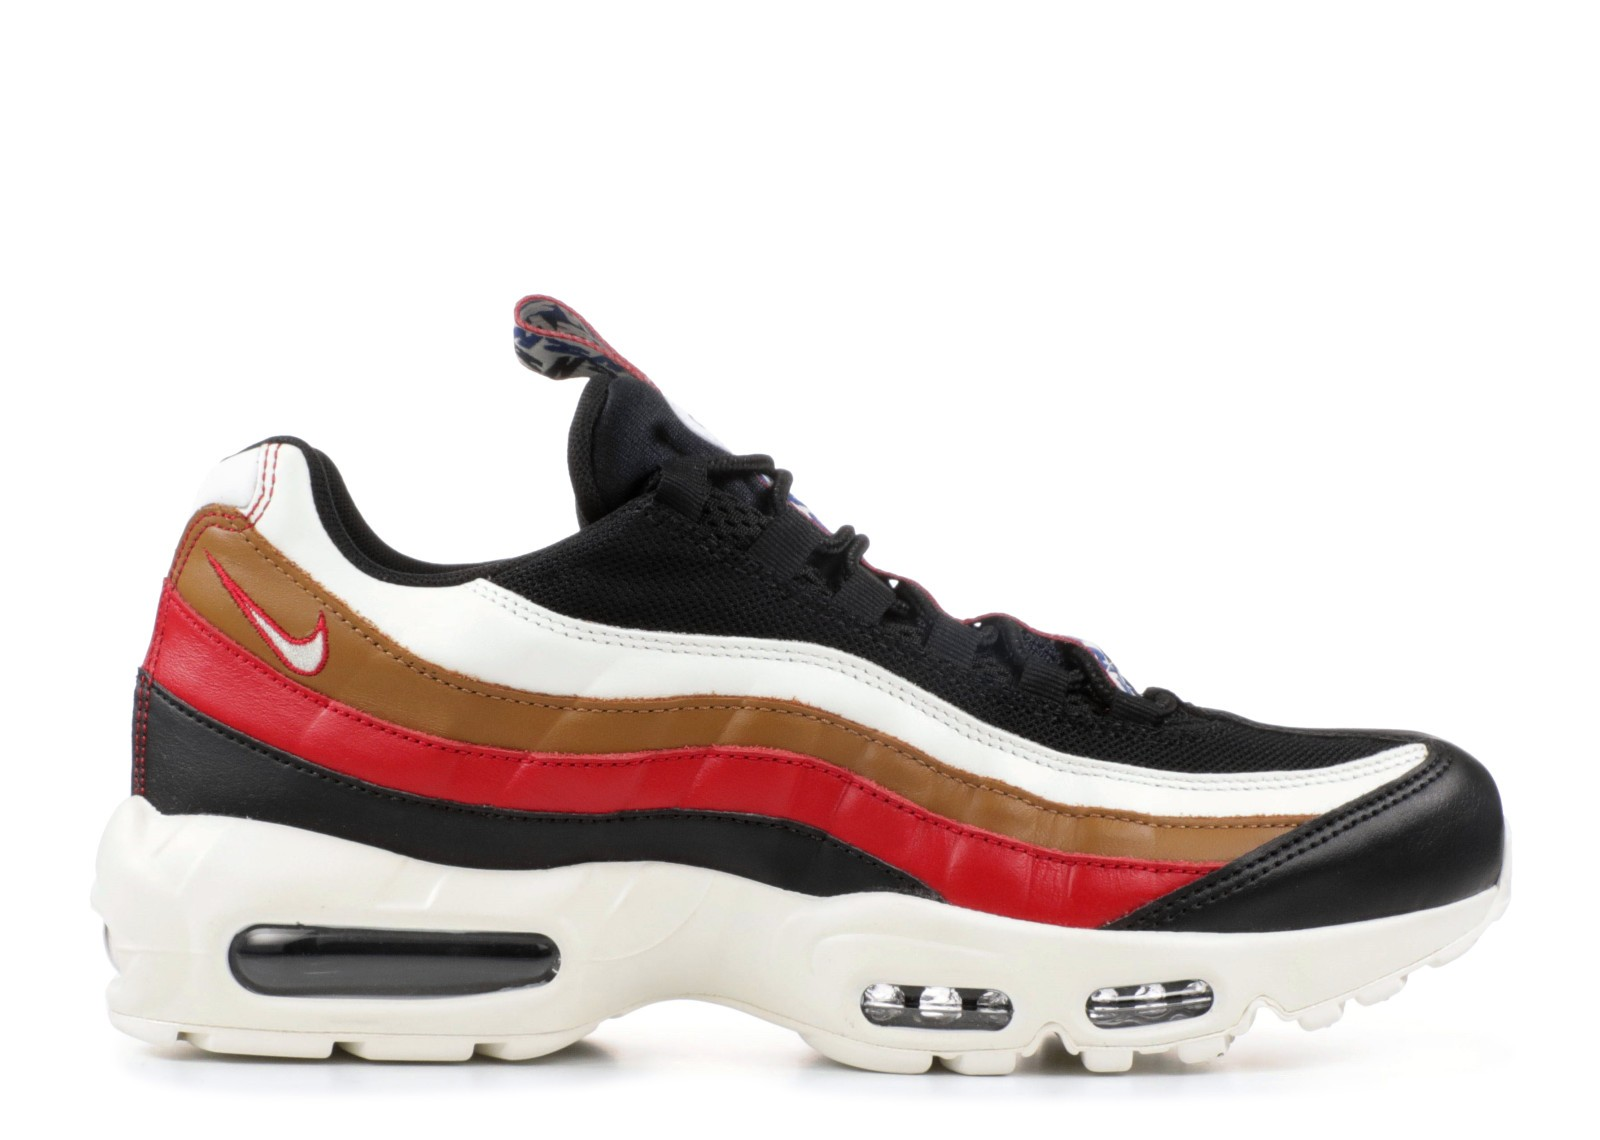 218de2d34e68 Nike Air Max 95 Tt Prm Pull Tab Brown Sail Gym Ale Black Red AJ4077 ...